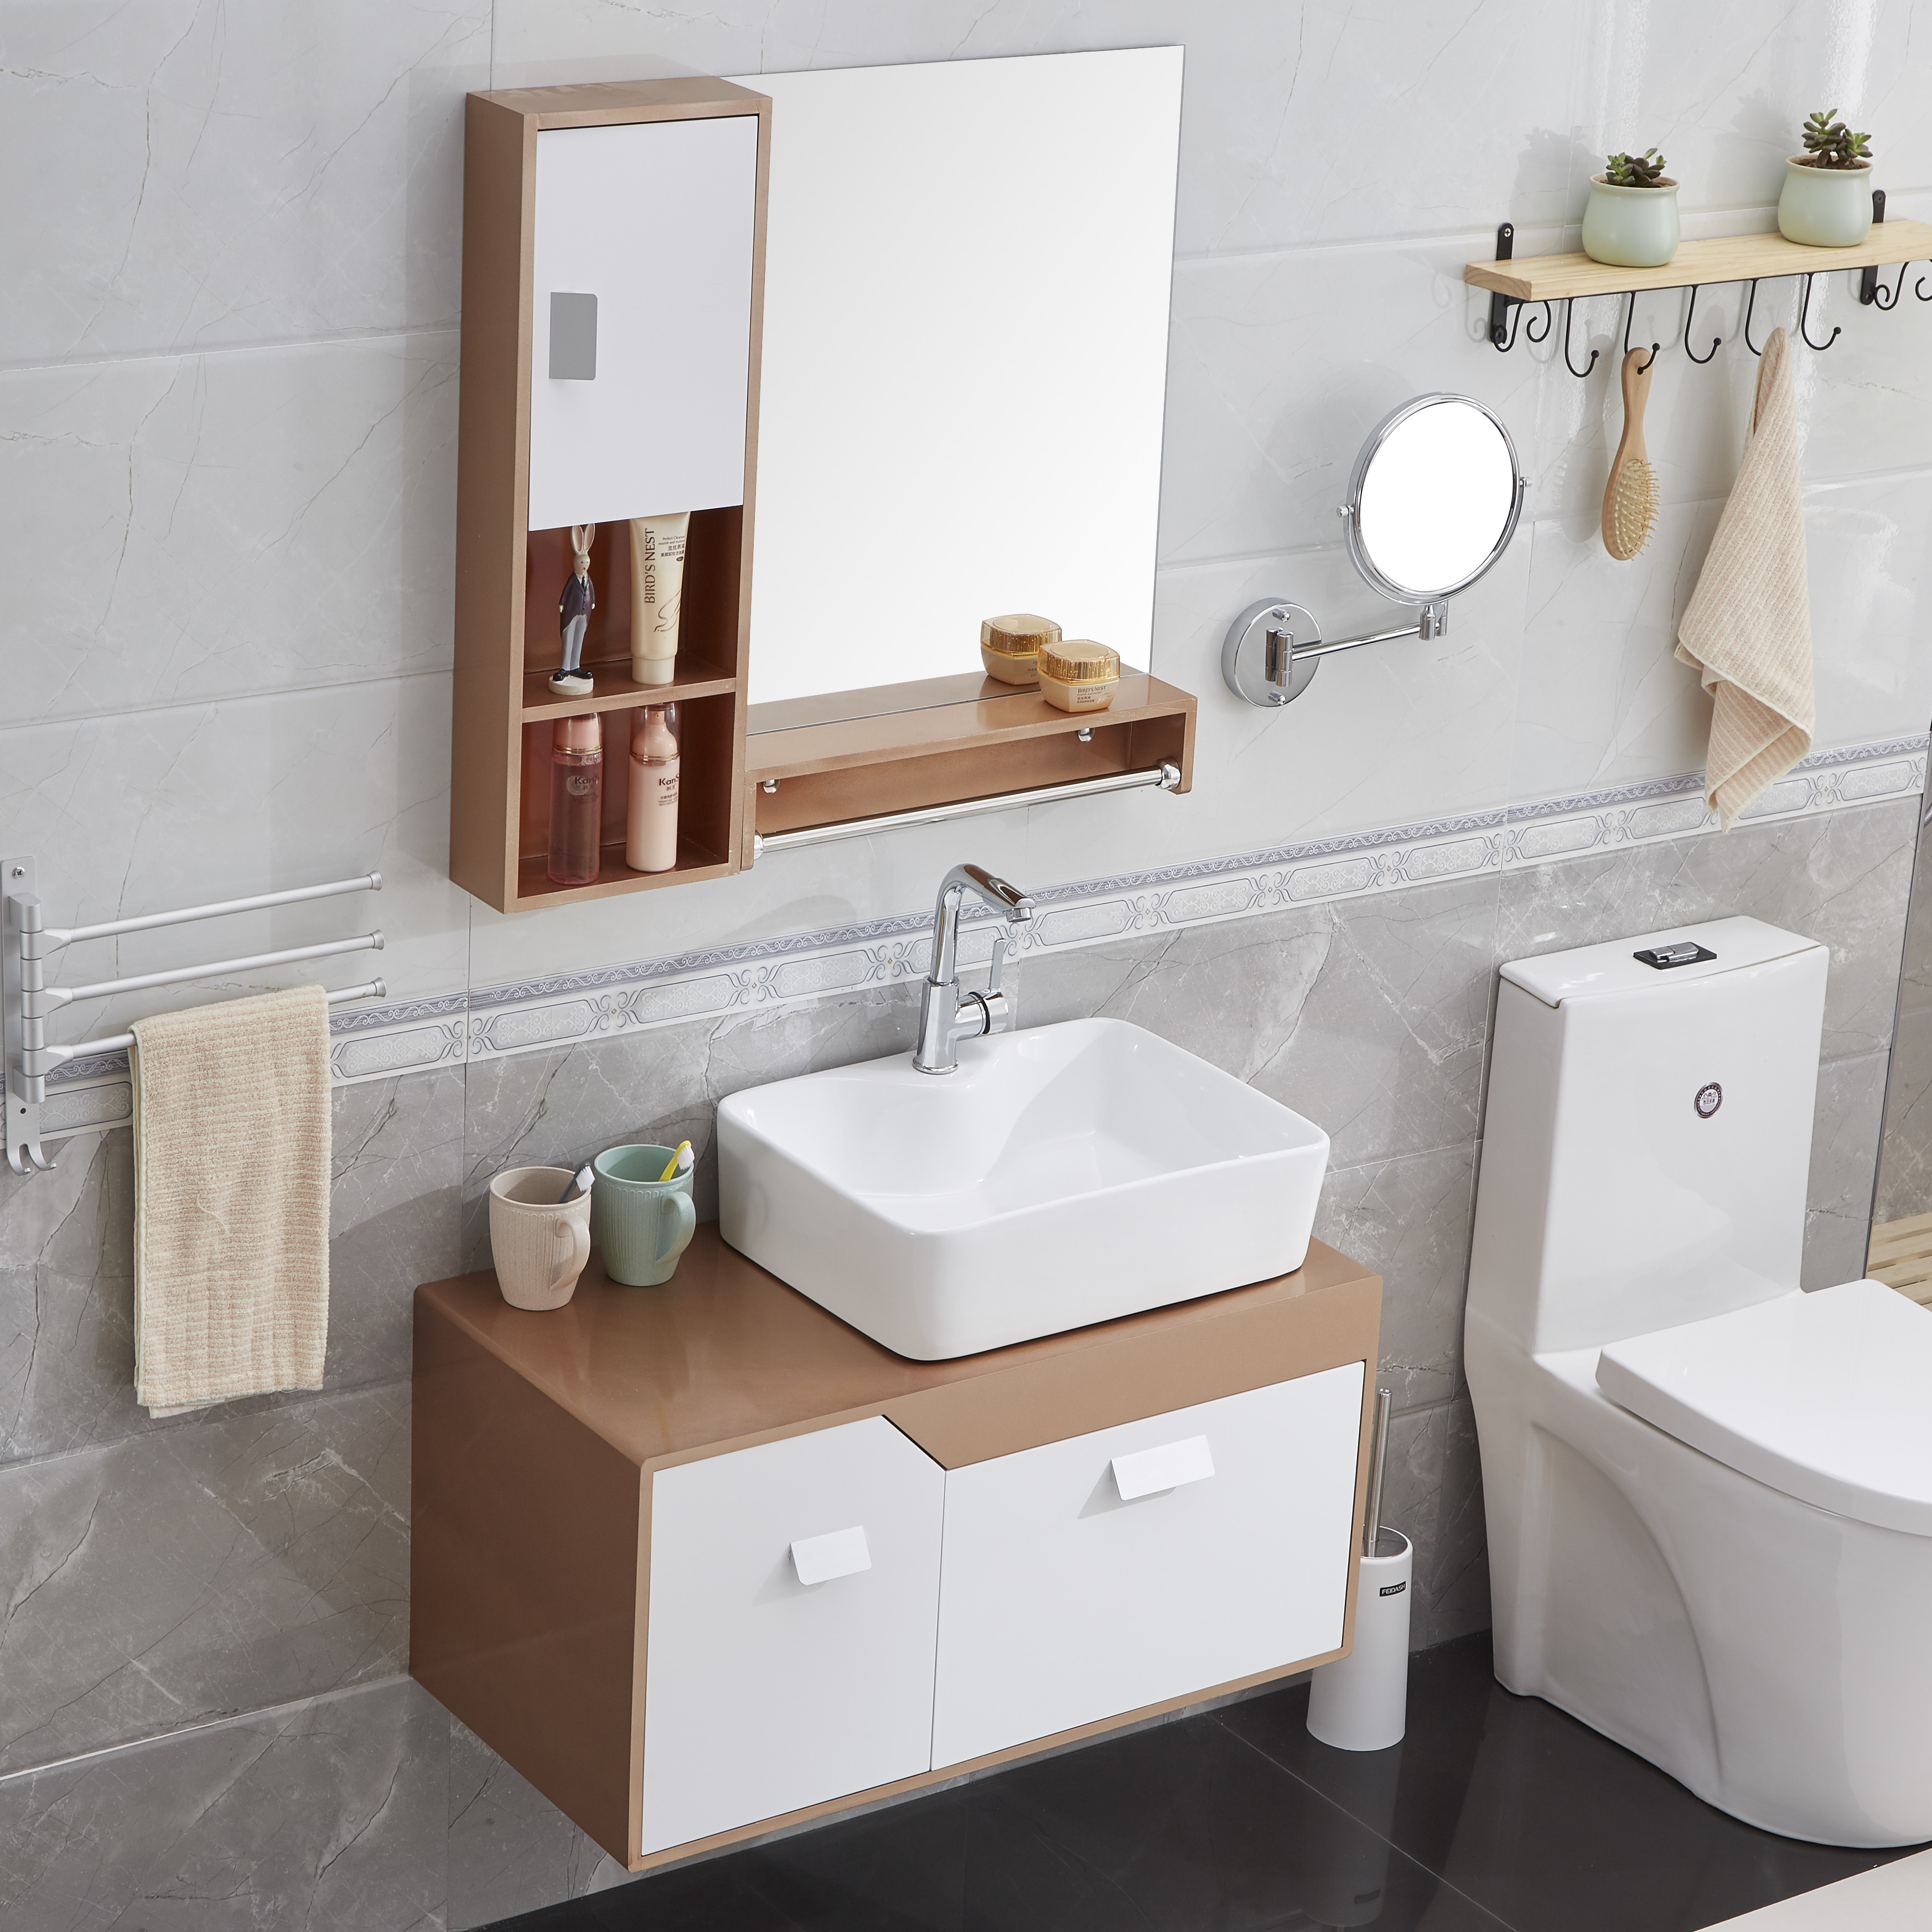 USD 104.39] Cheap and simple modern bathroom cabinet combination of ...